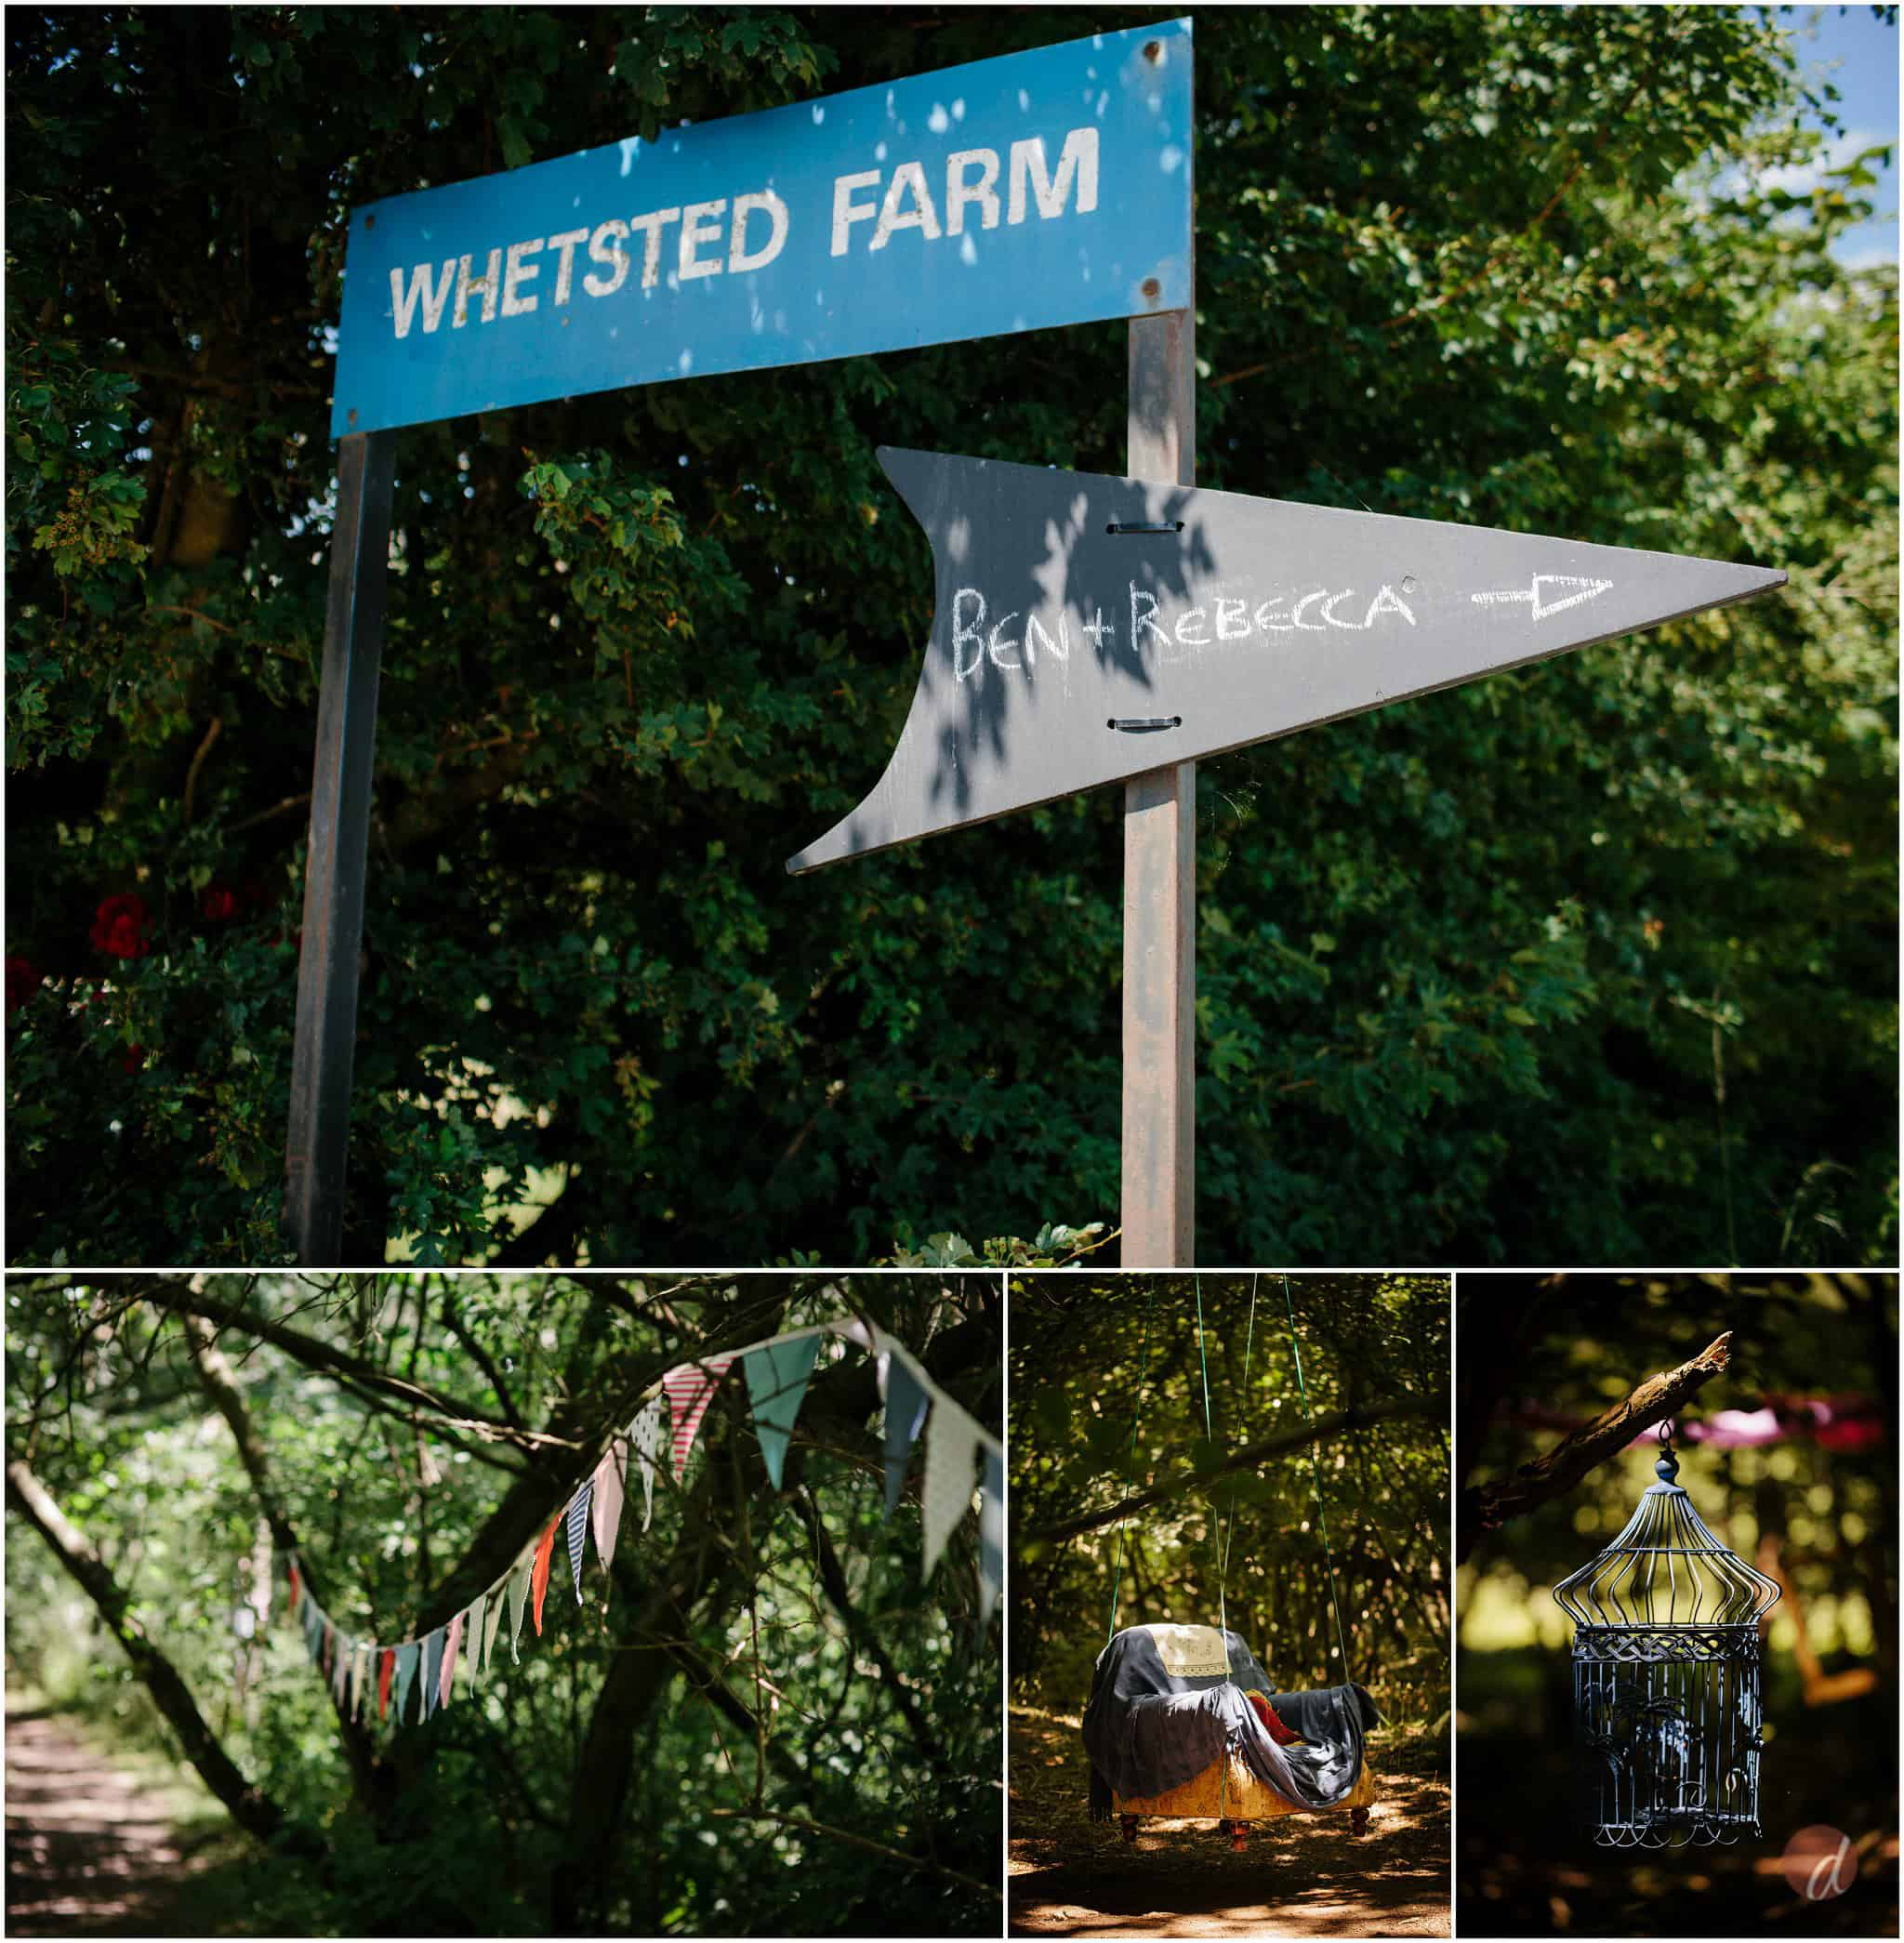 whetsted farm